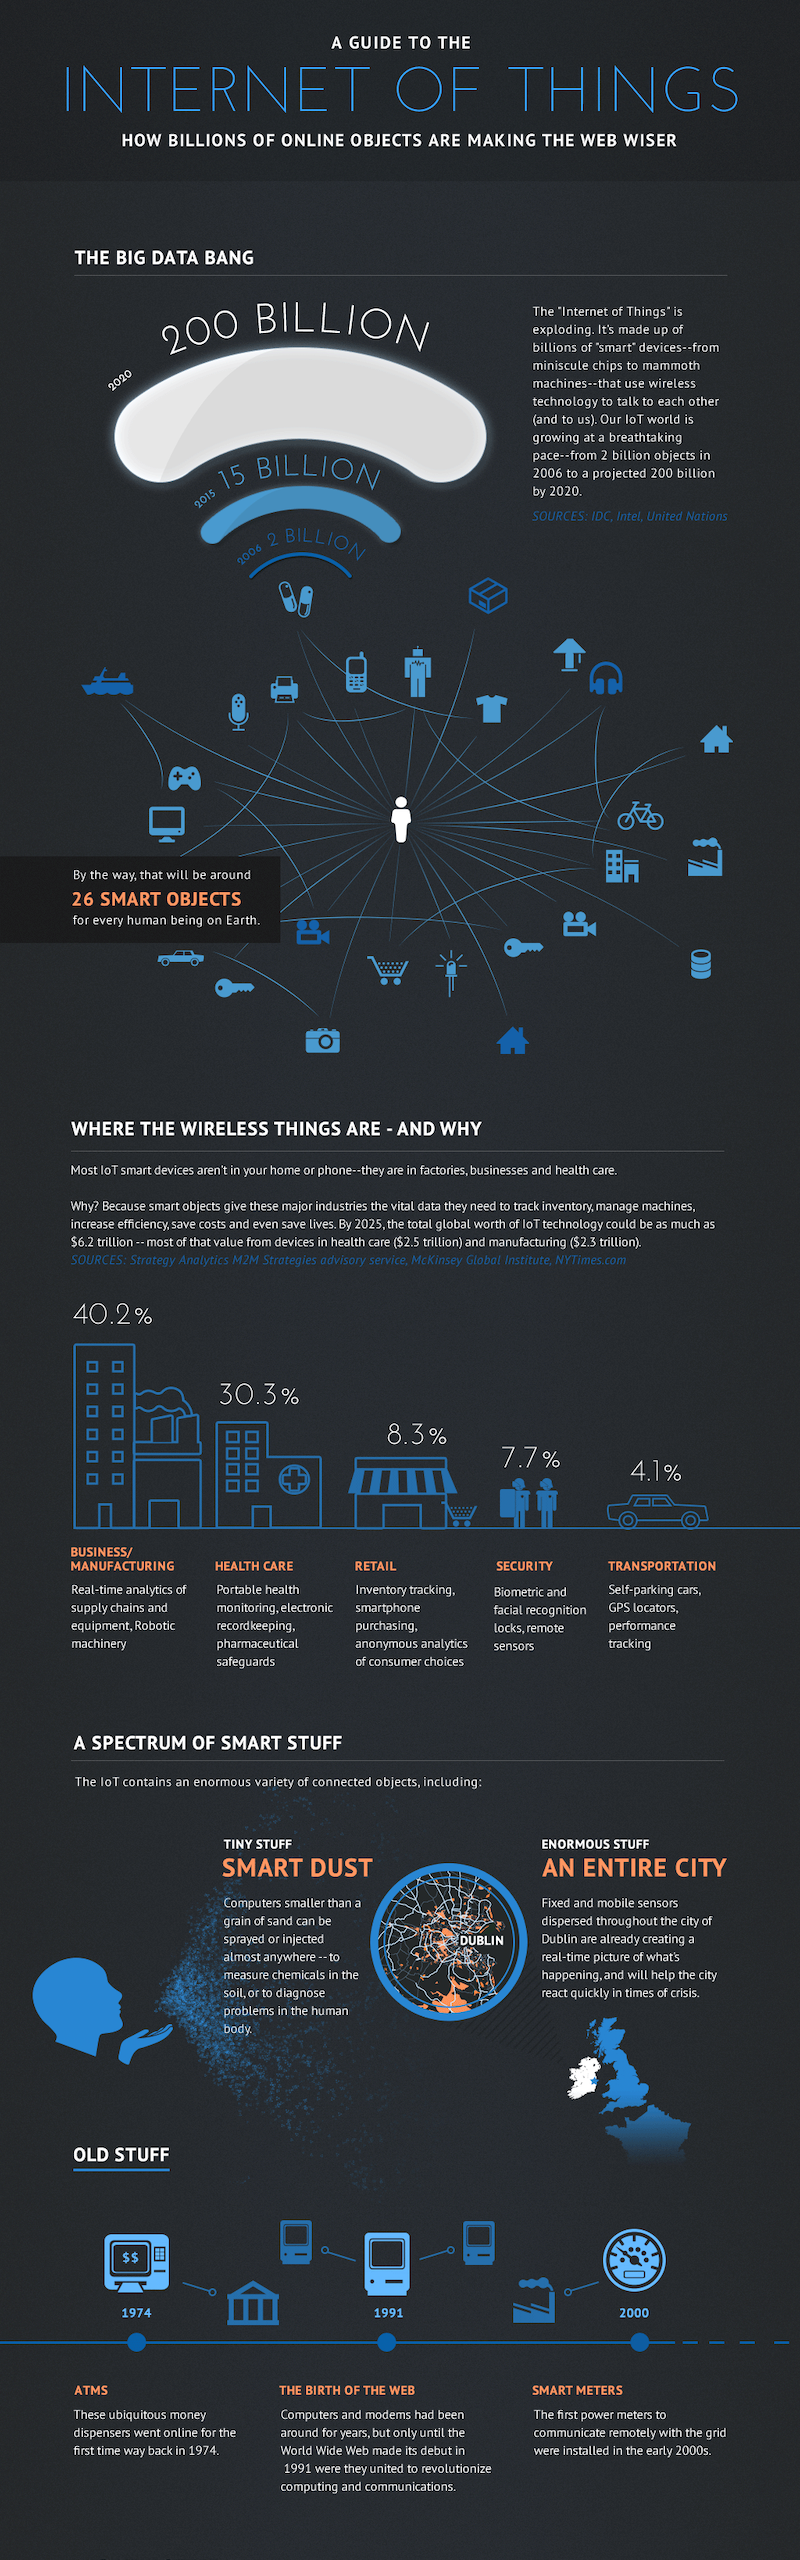 An infographic example showcasing the internet of things (IOT).